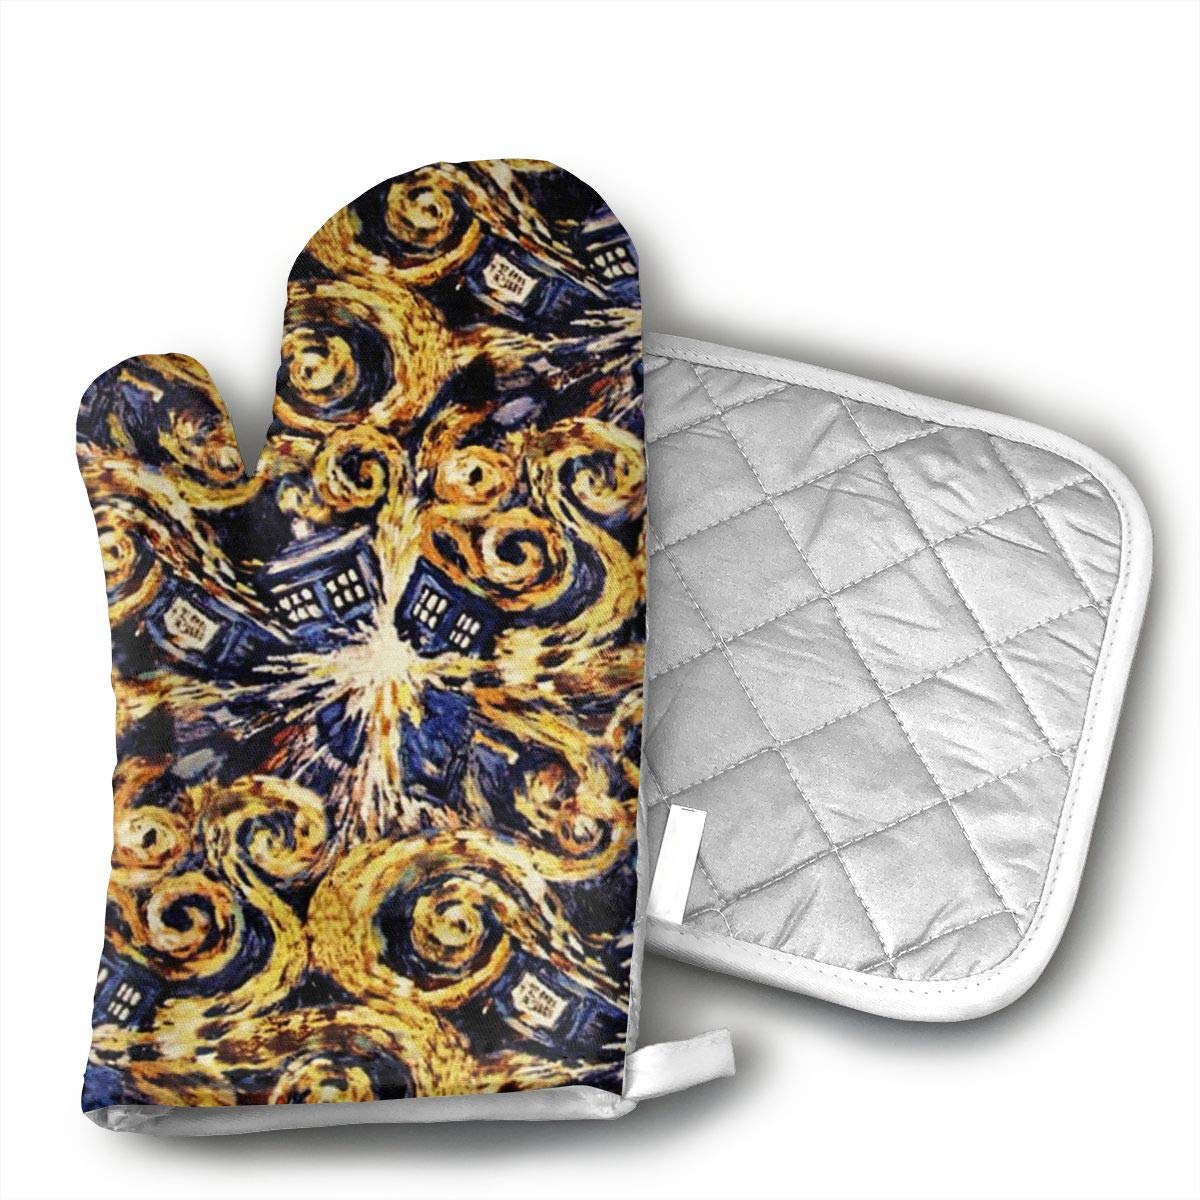 Doctor Who Exploding Tardis Oven Mitts and Pot Holders Set with Polyester Cotton Non-Slip Grip, Heat Resistant, Oven Gloves for BBQ Cooking Baking, Grilling